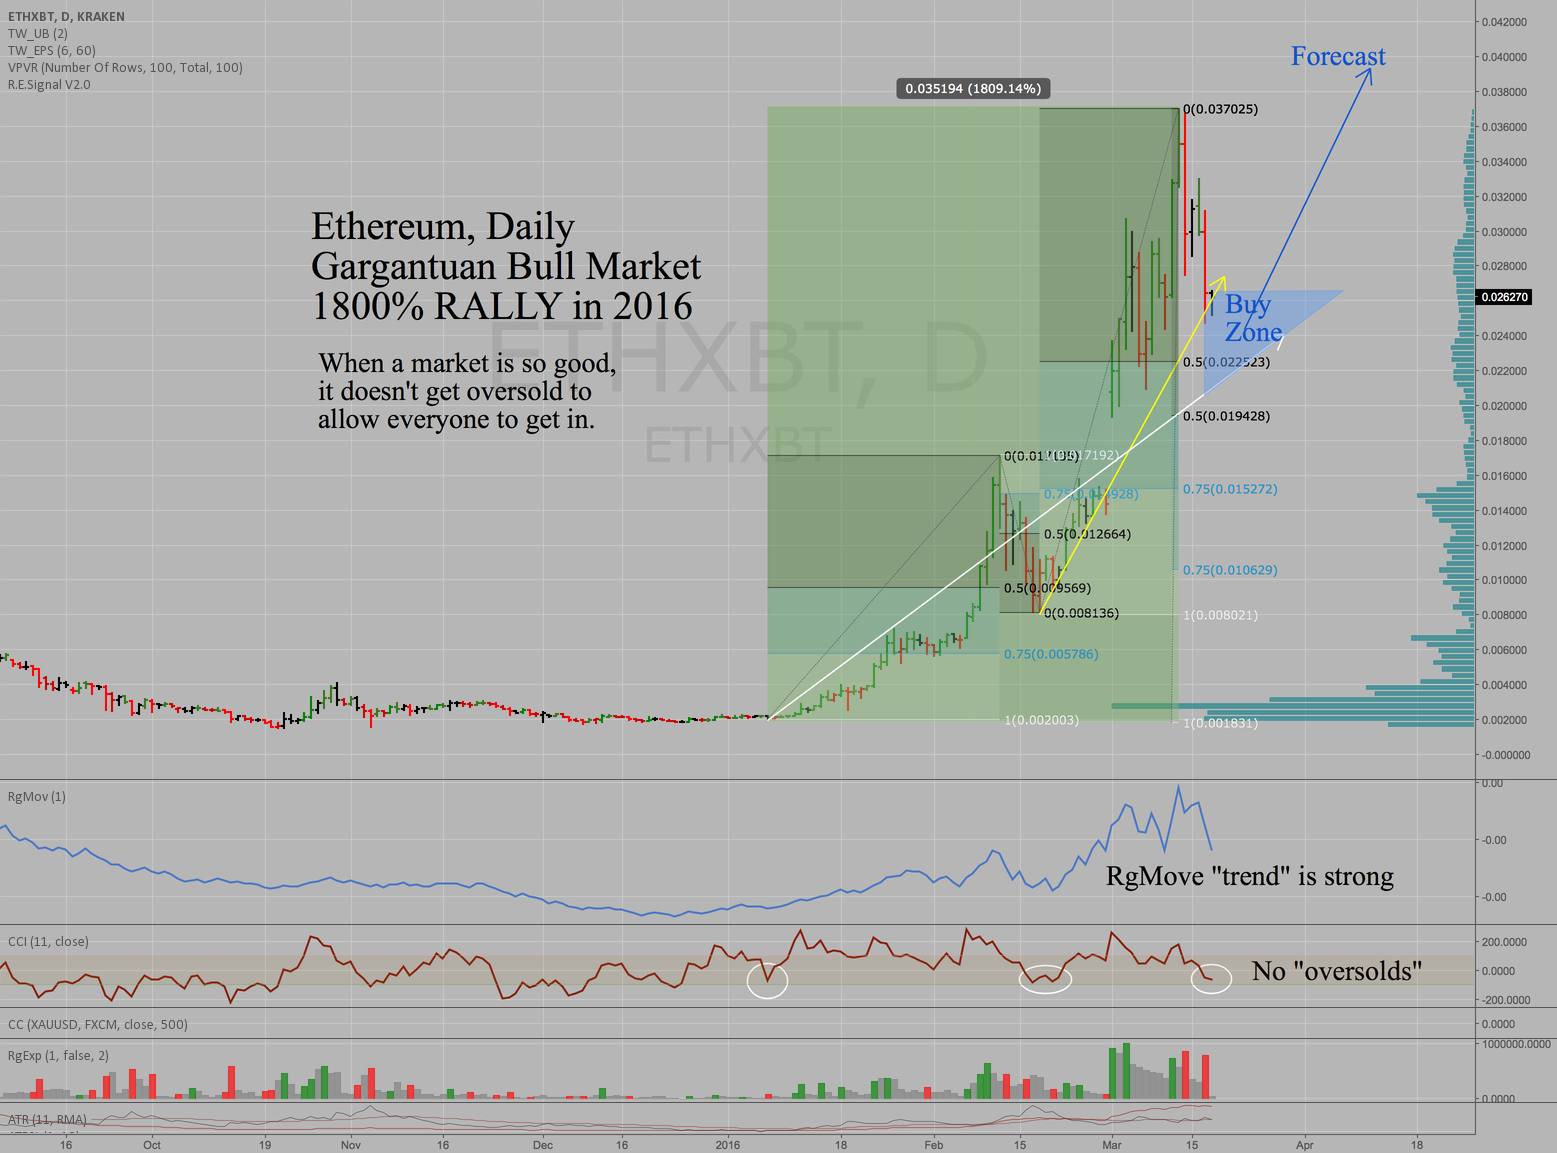 Ethereum - ETHXBT - Daily - SuperTrending market - Buy Zone